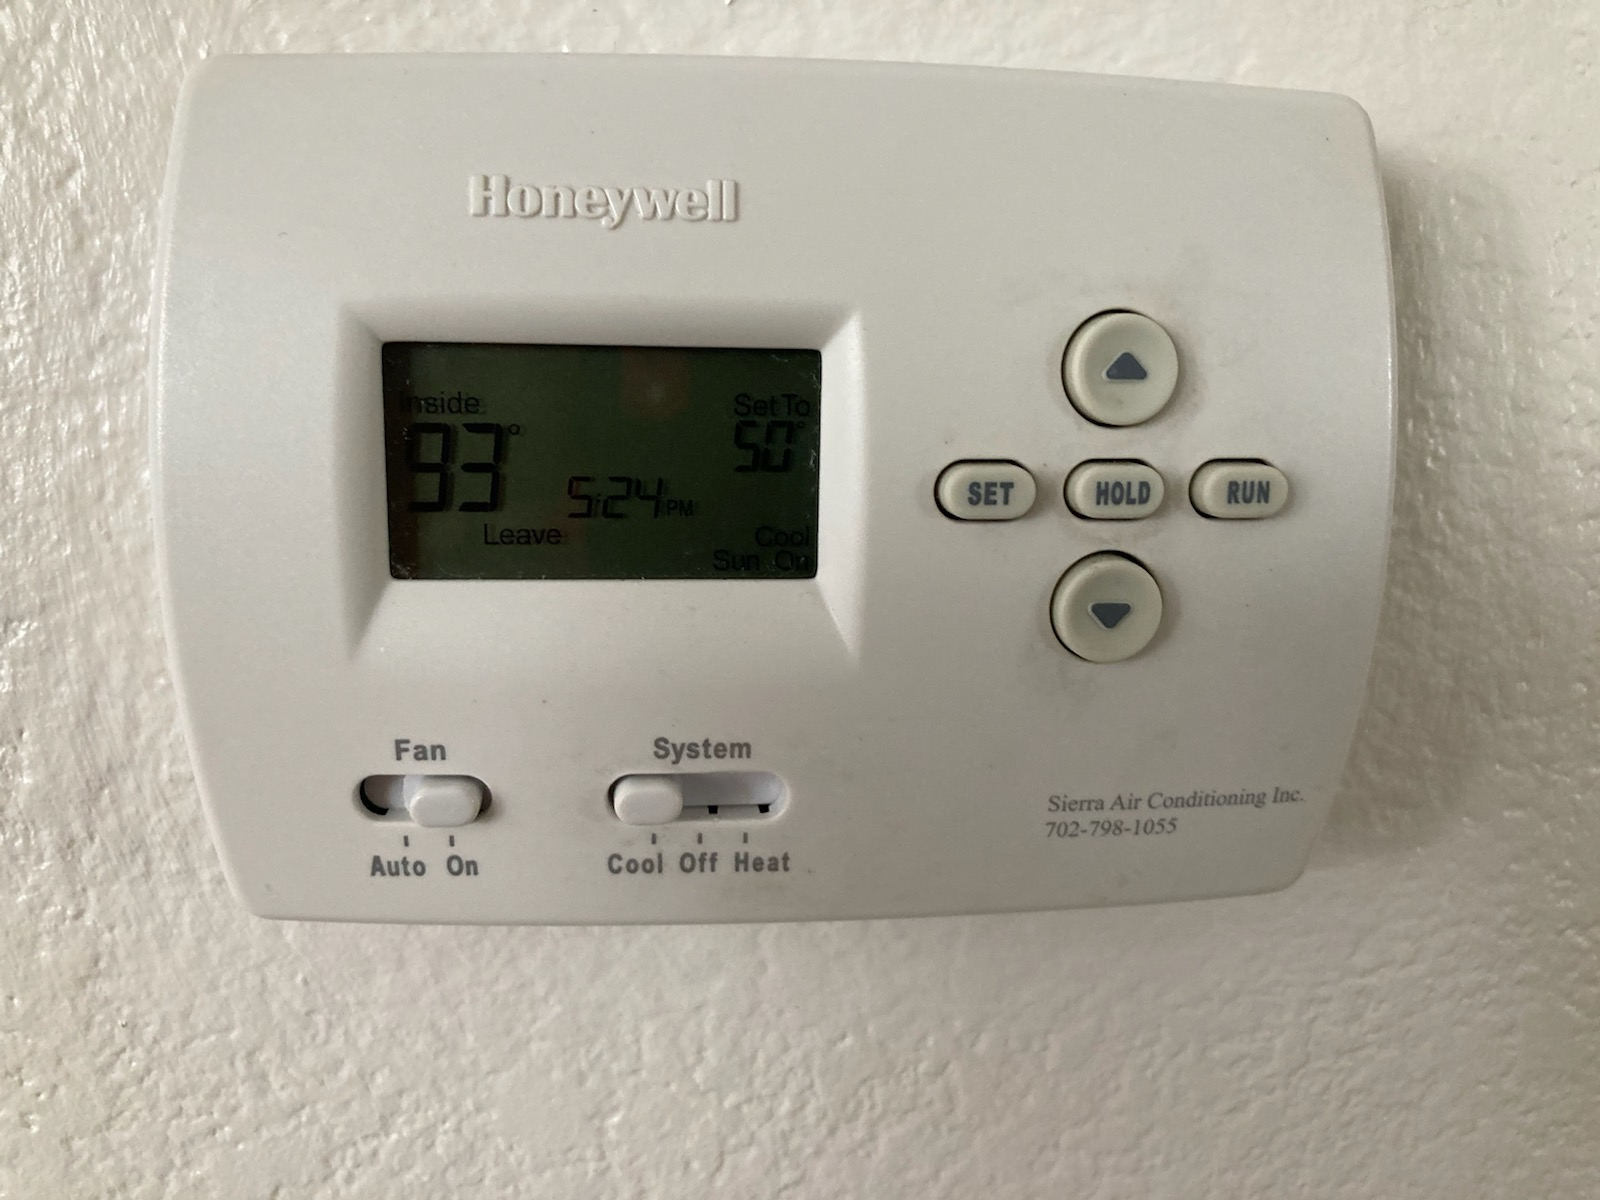 How do I reset my Honeywell Thermostat? About 14 years old